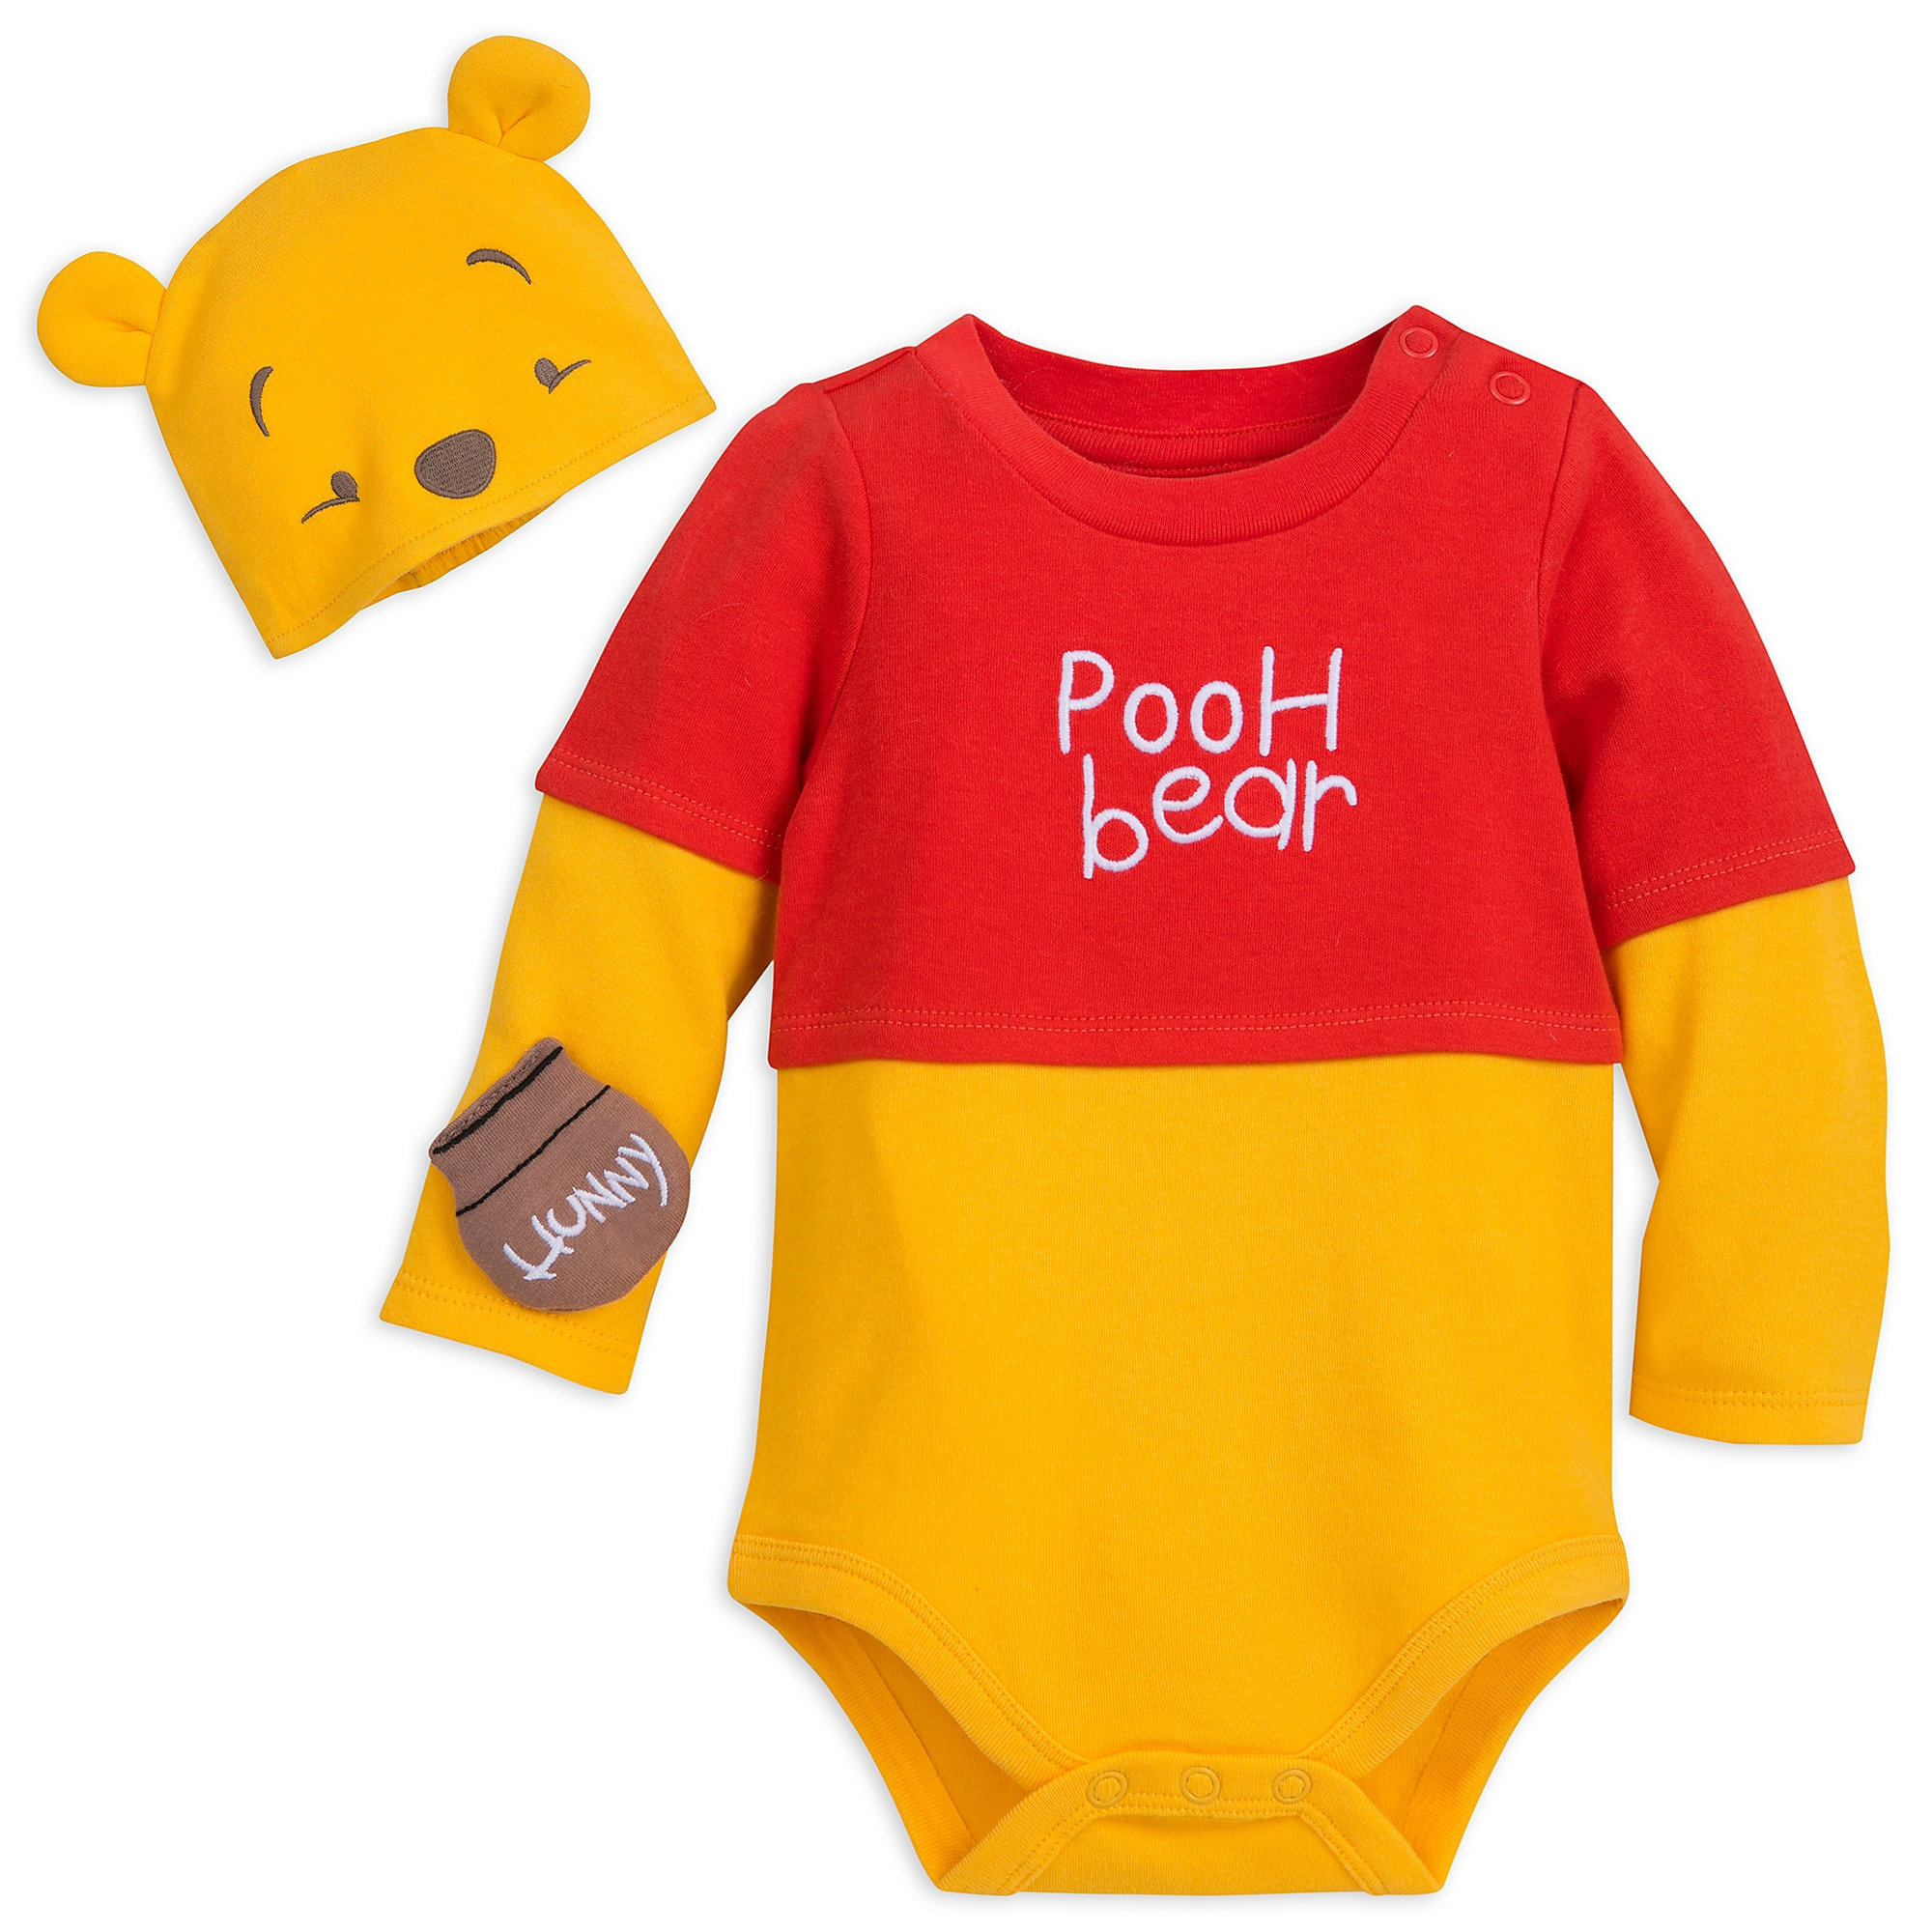 Winnie the Pooh Costume Bodysuit Set for Baby  sc 1 st  shopDisney & Winnie the Pooh Costume Bodysuit Set for Baby   shopDisney